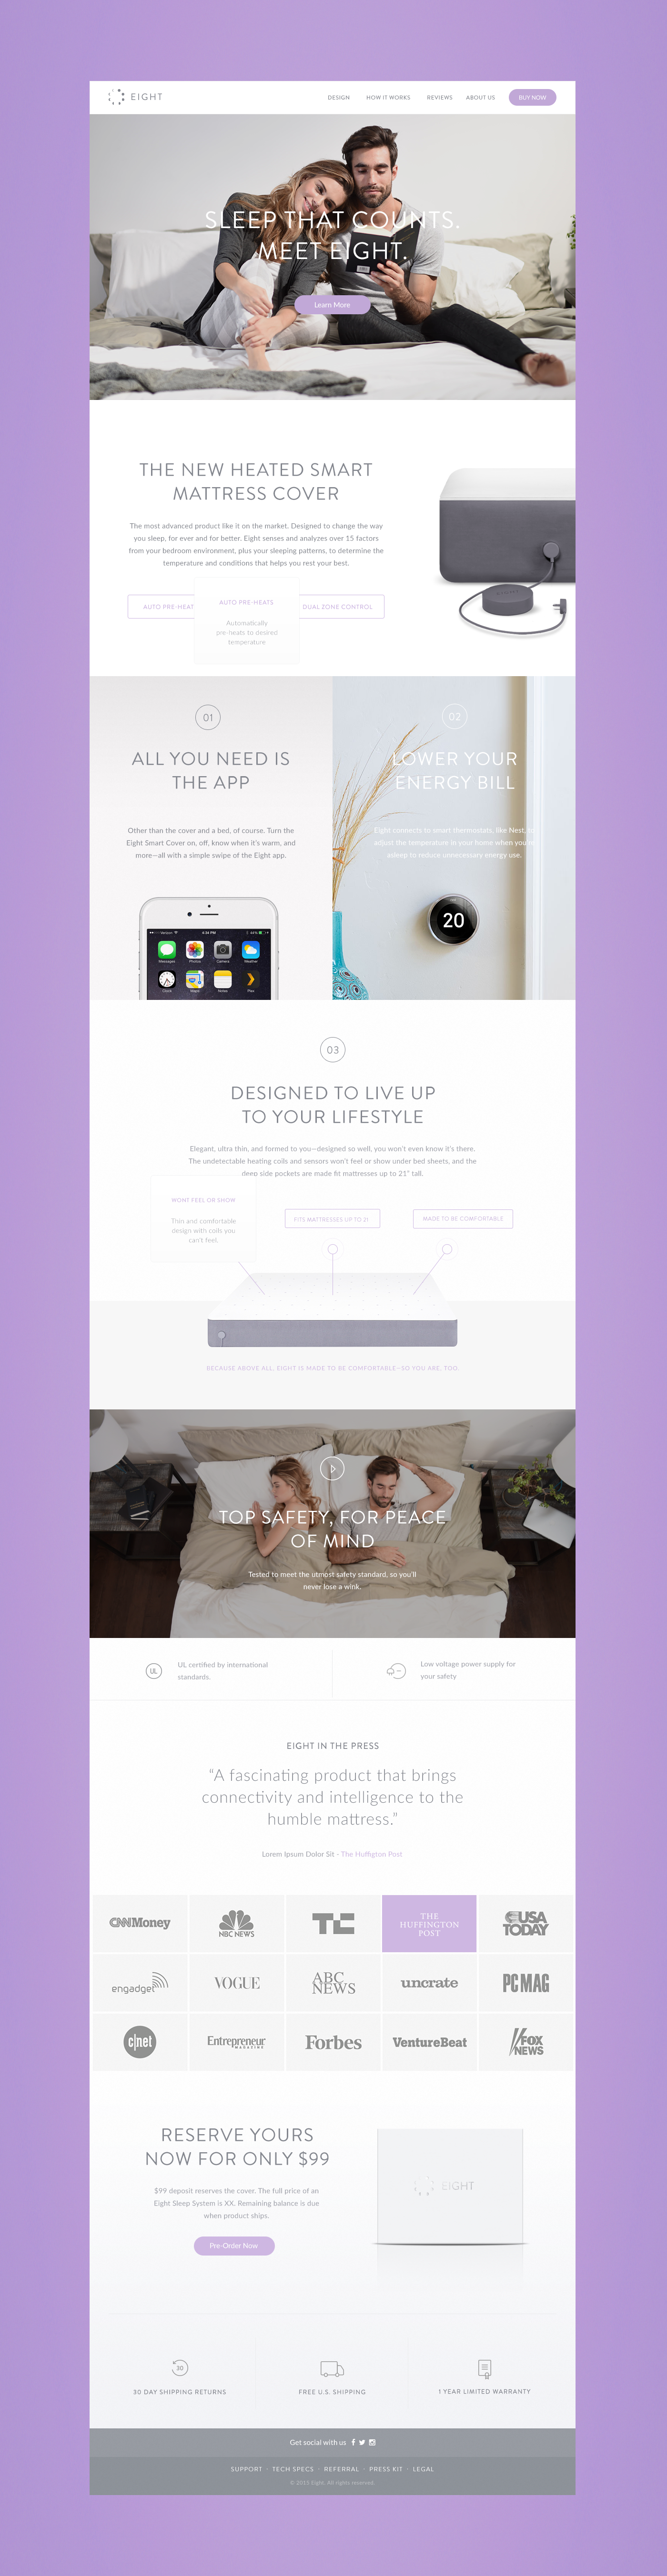 matress cover sleep night moon phases Eight calm peacefulness Smart Internet of Things